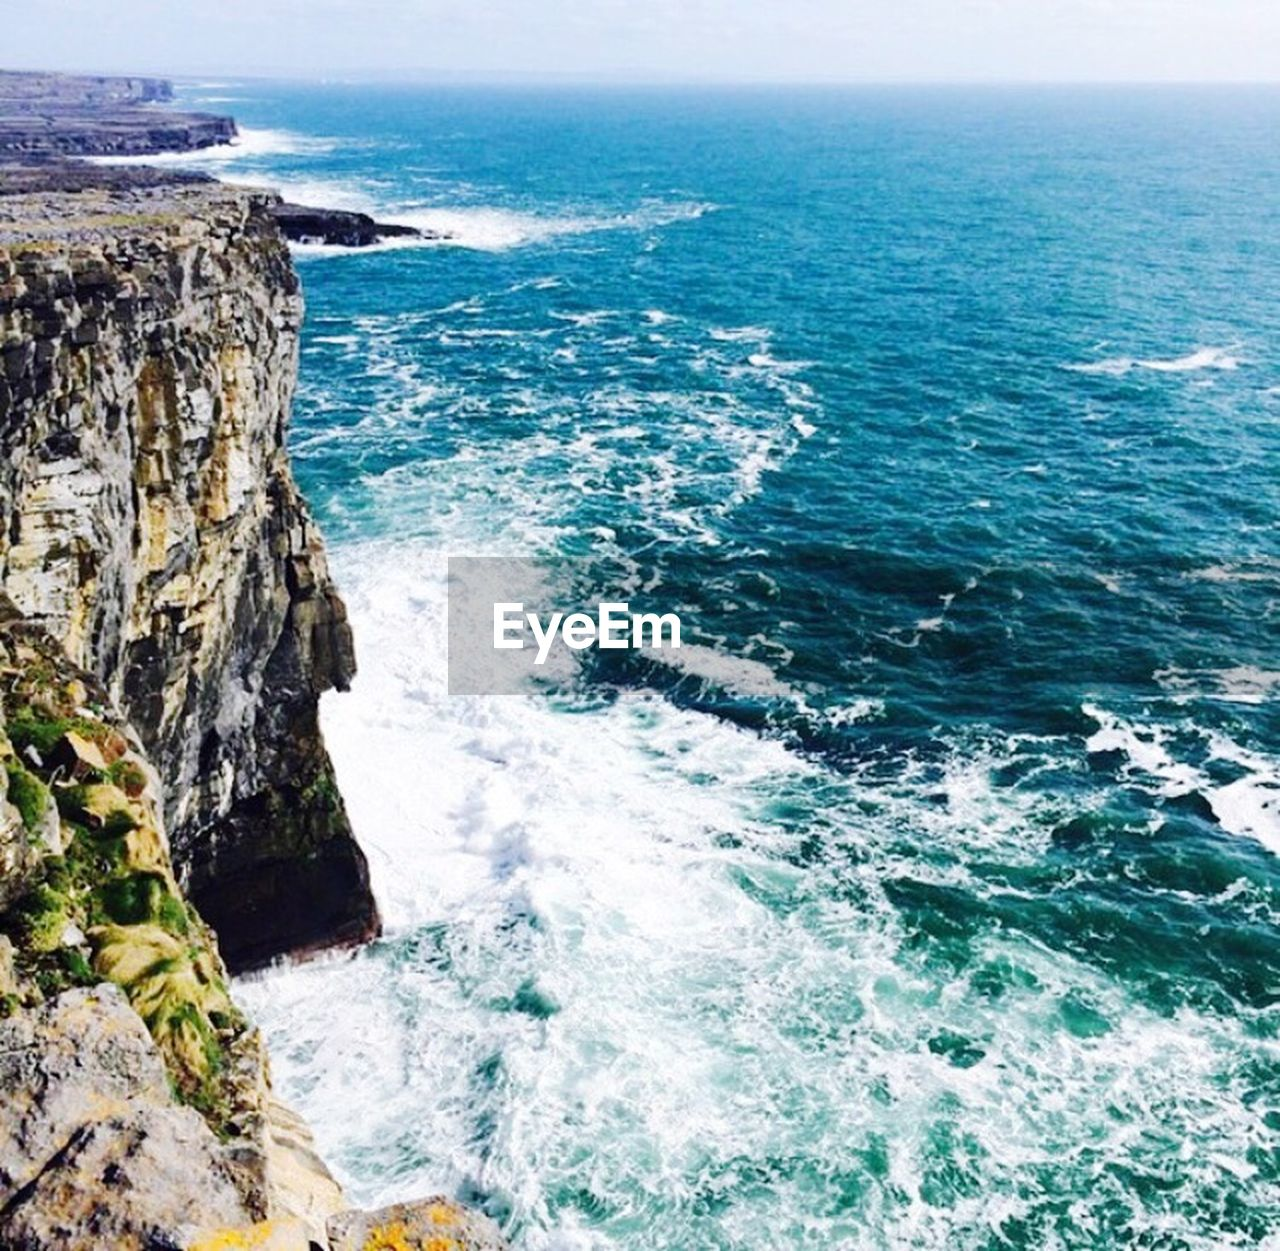 sea, water, rock - object, horizon over water, nature, beauty in nature, rock formation, scenics, cliff, no people, day, outdoors, wave, clear sky, sky